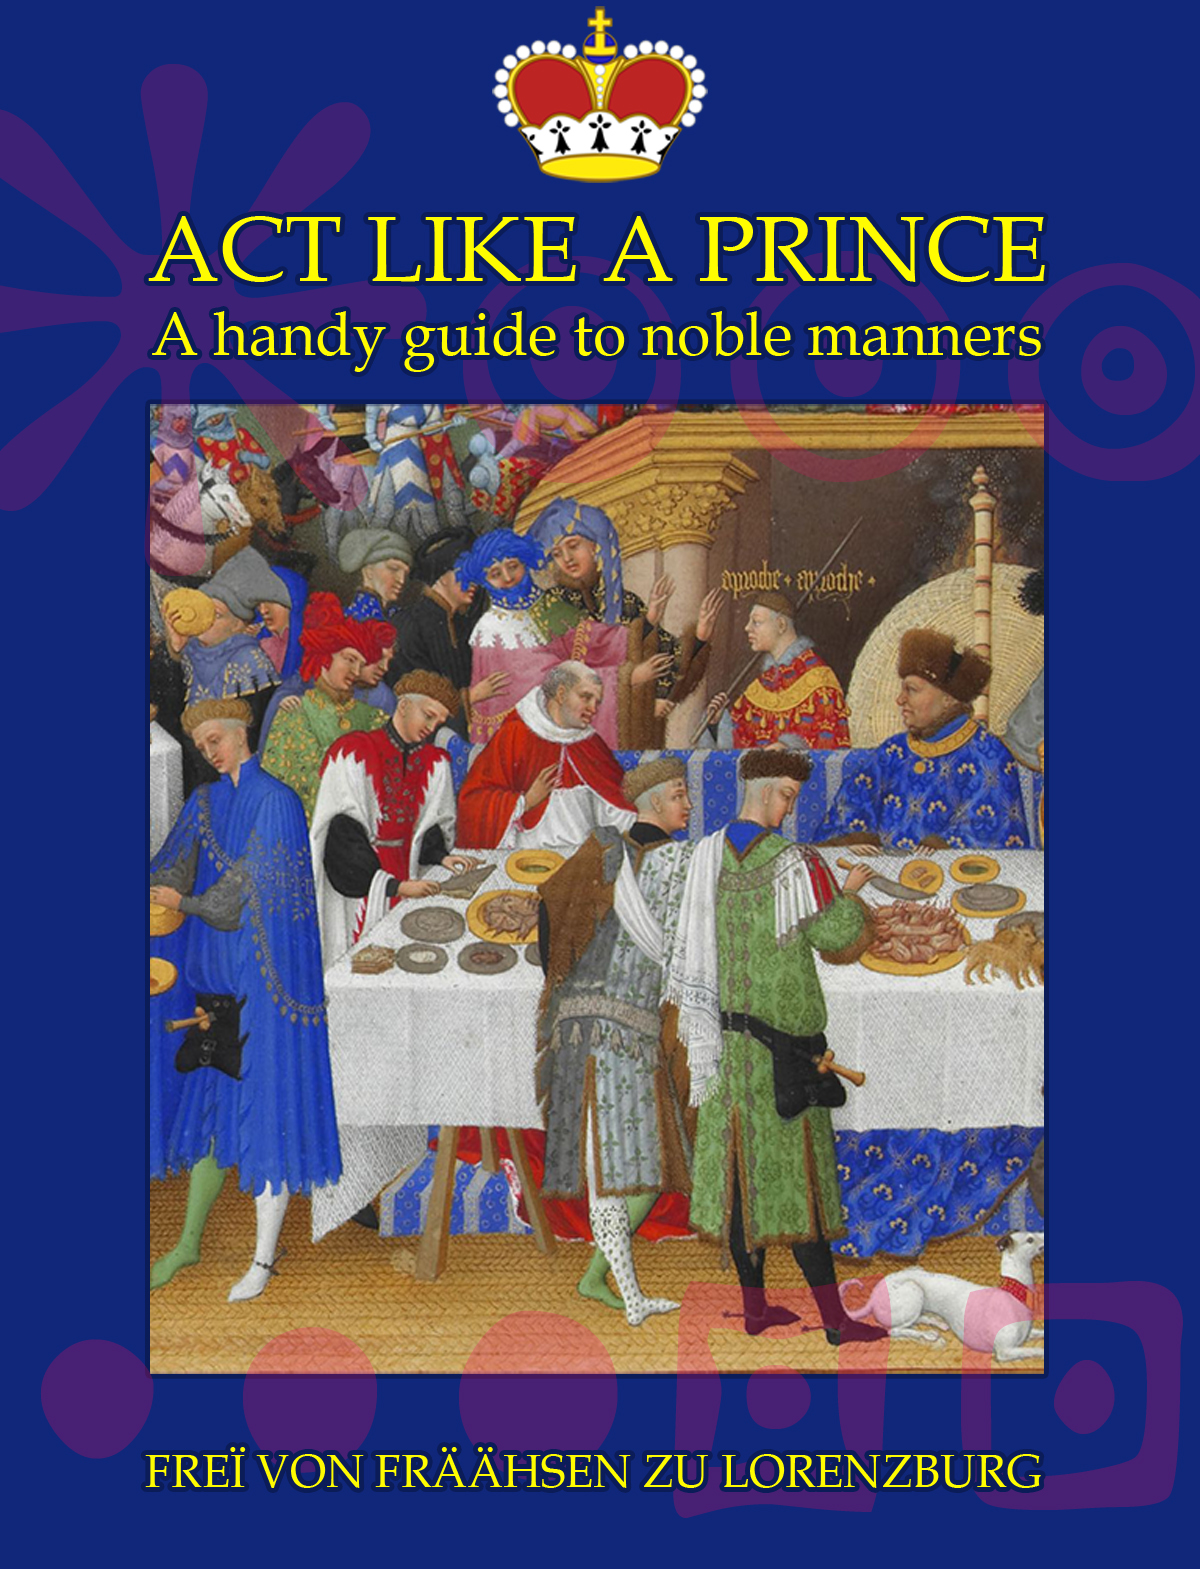 Act like a Prince – a handy guide to noble manners